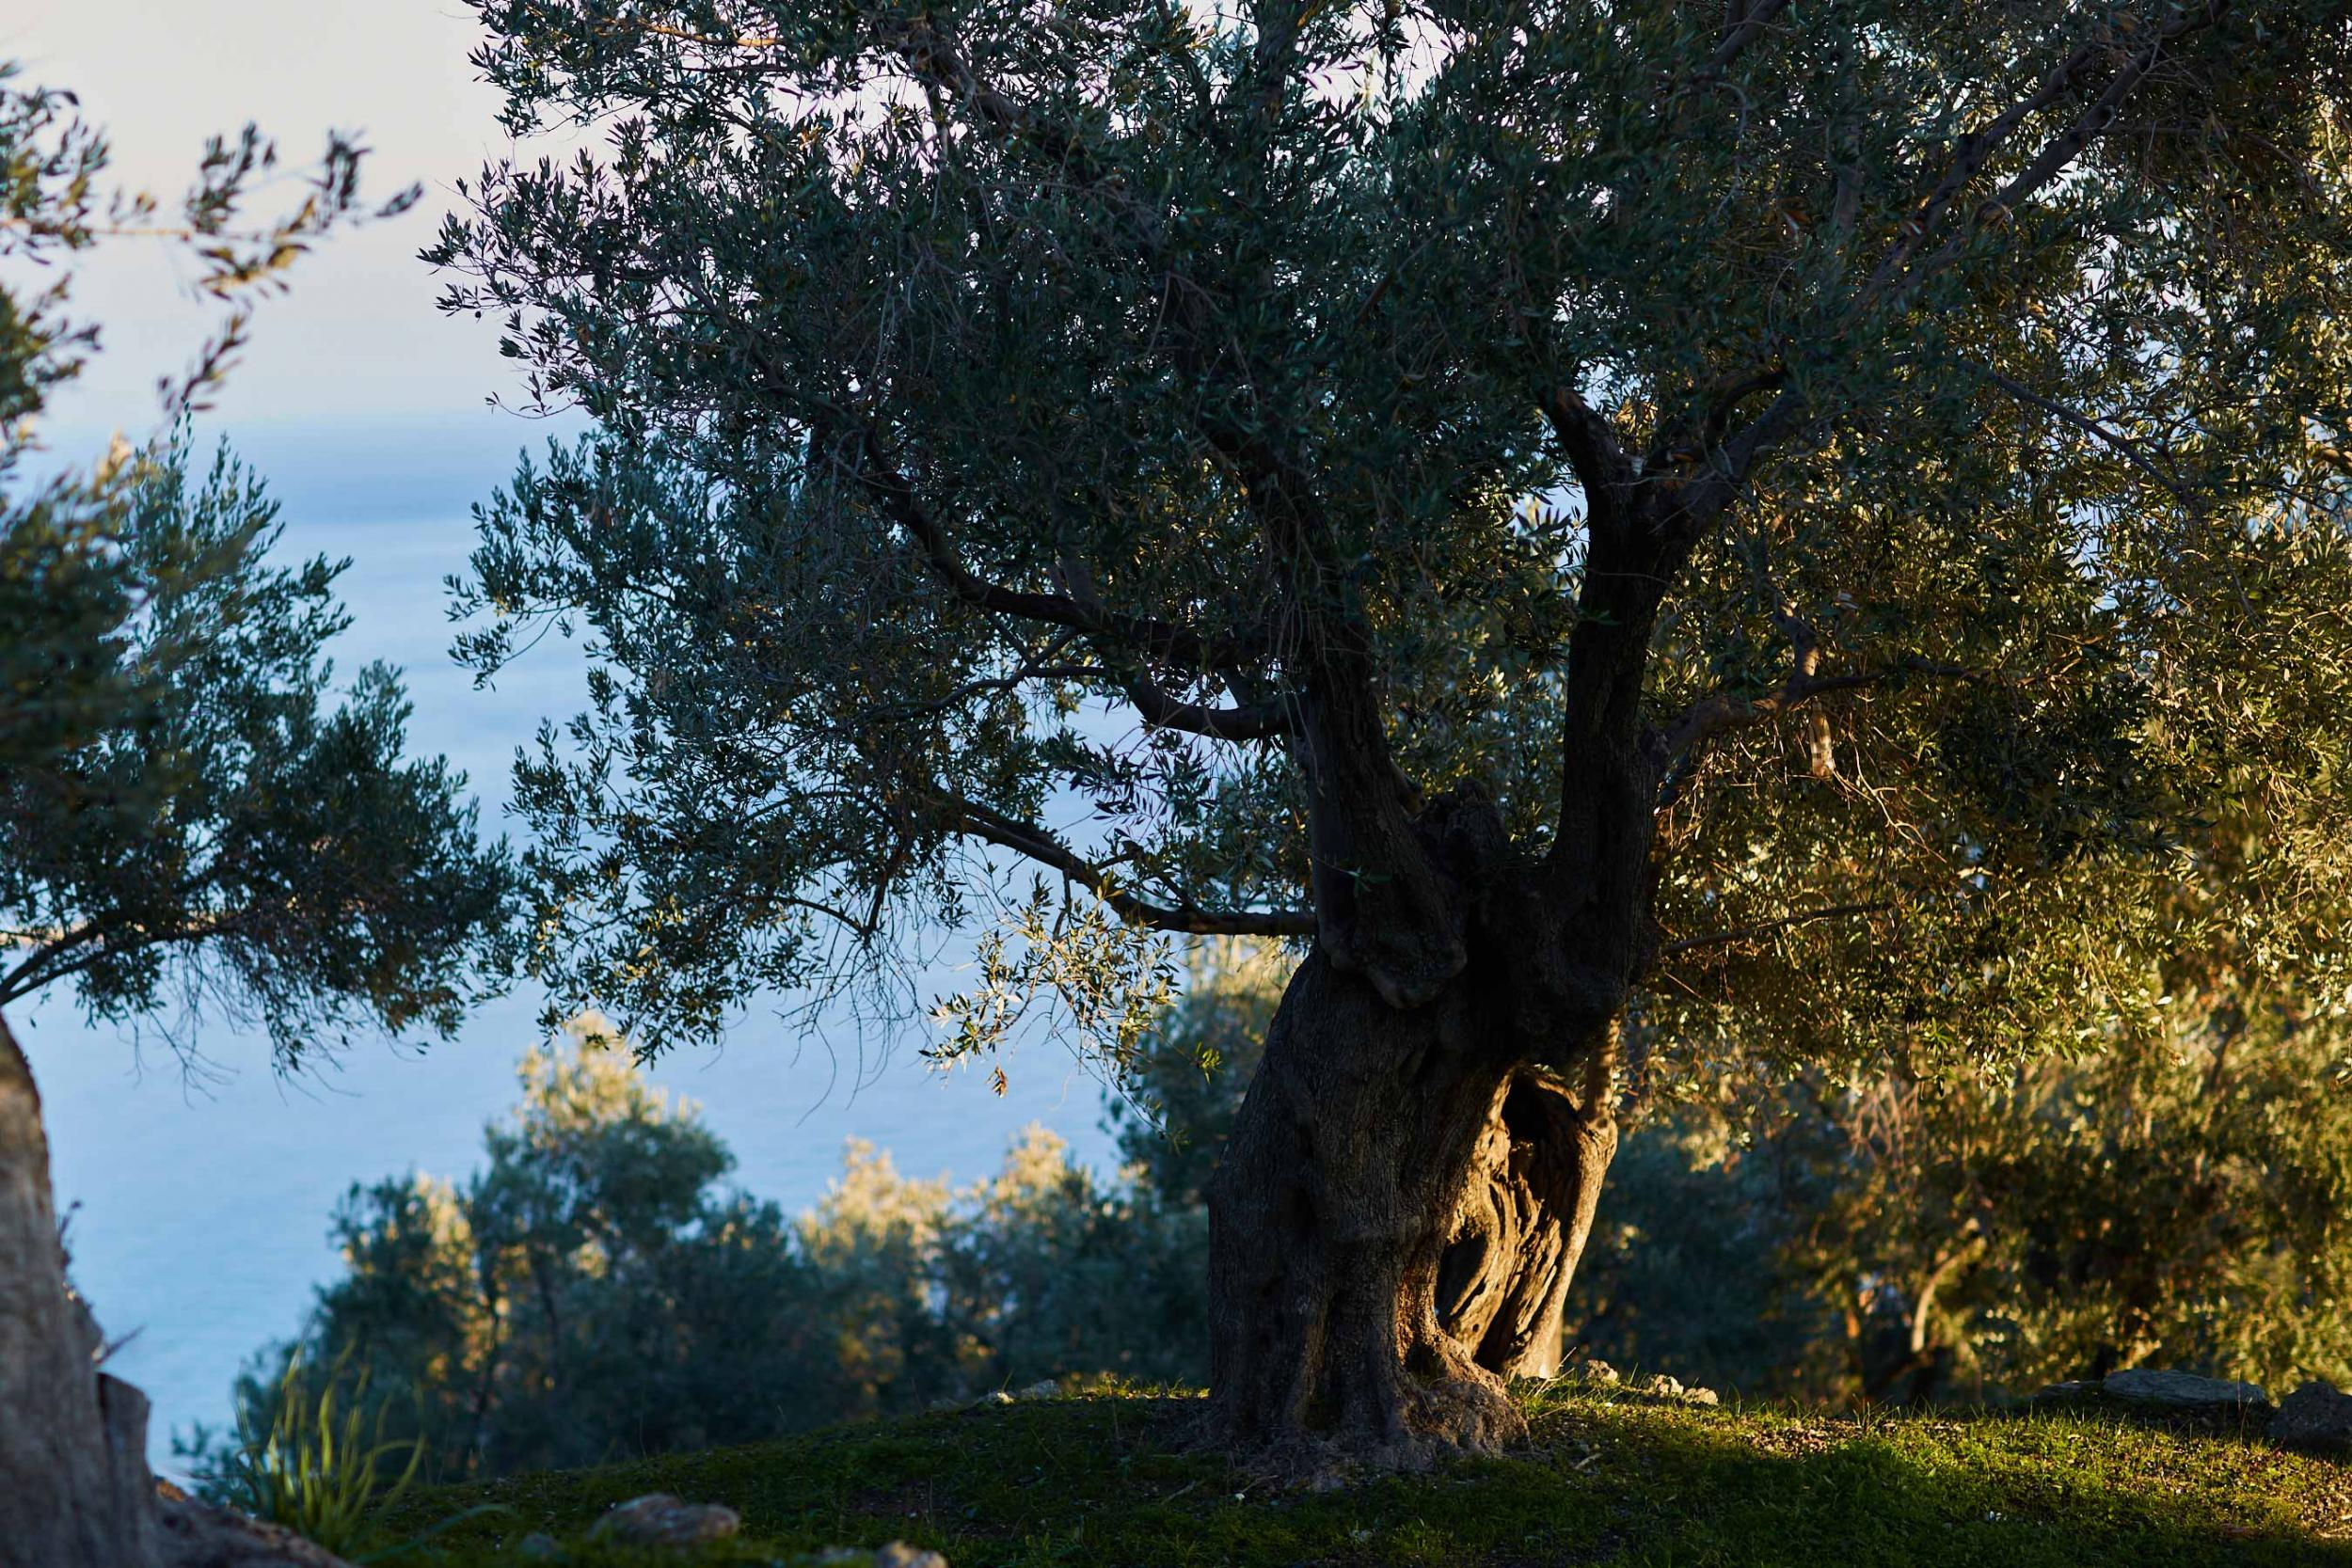 olive tree in afternoon light above Plomari, Lesvos